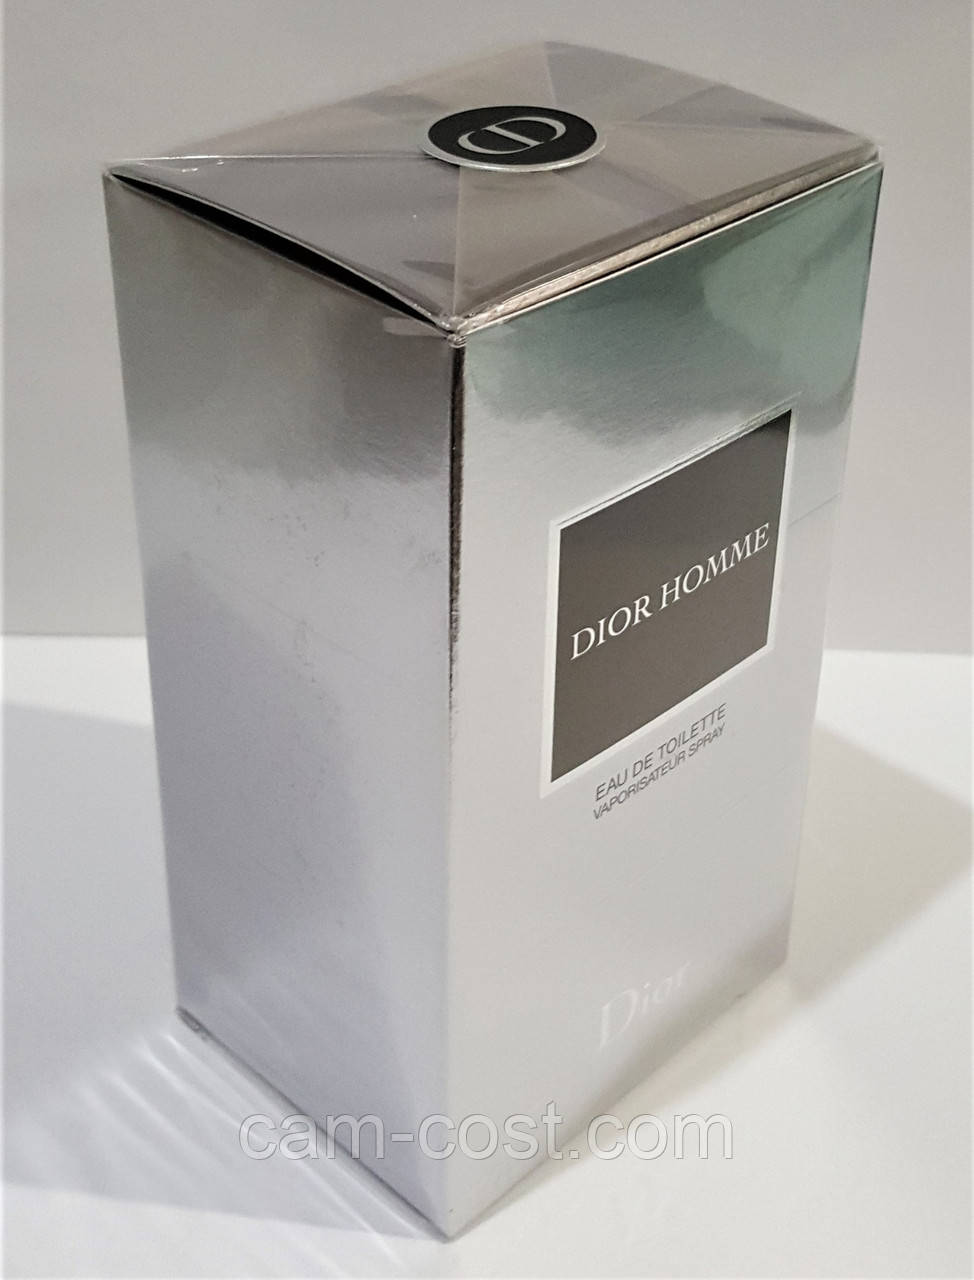 Christian Dior Homme (ORIGINAL) edt 100 ml